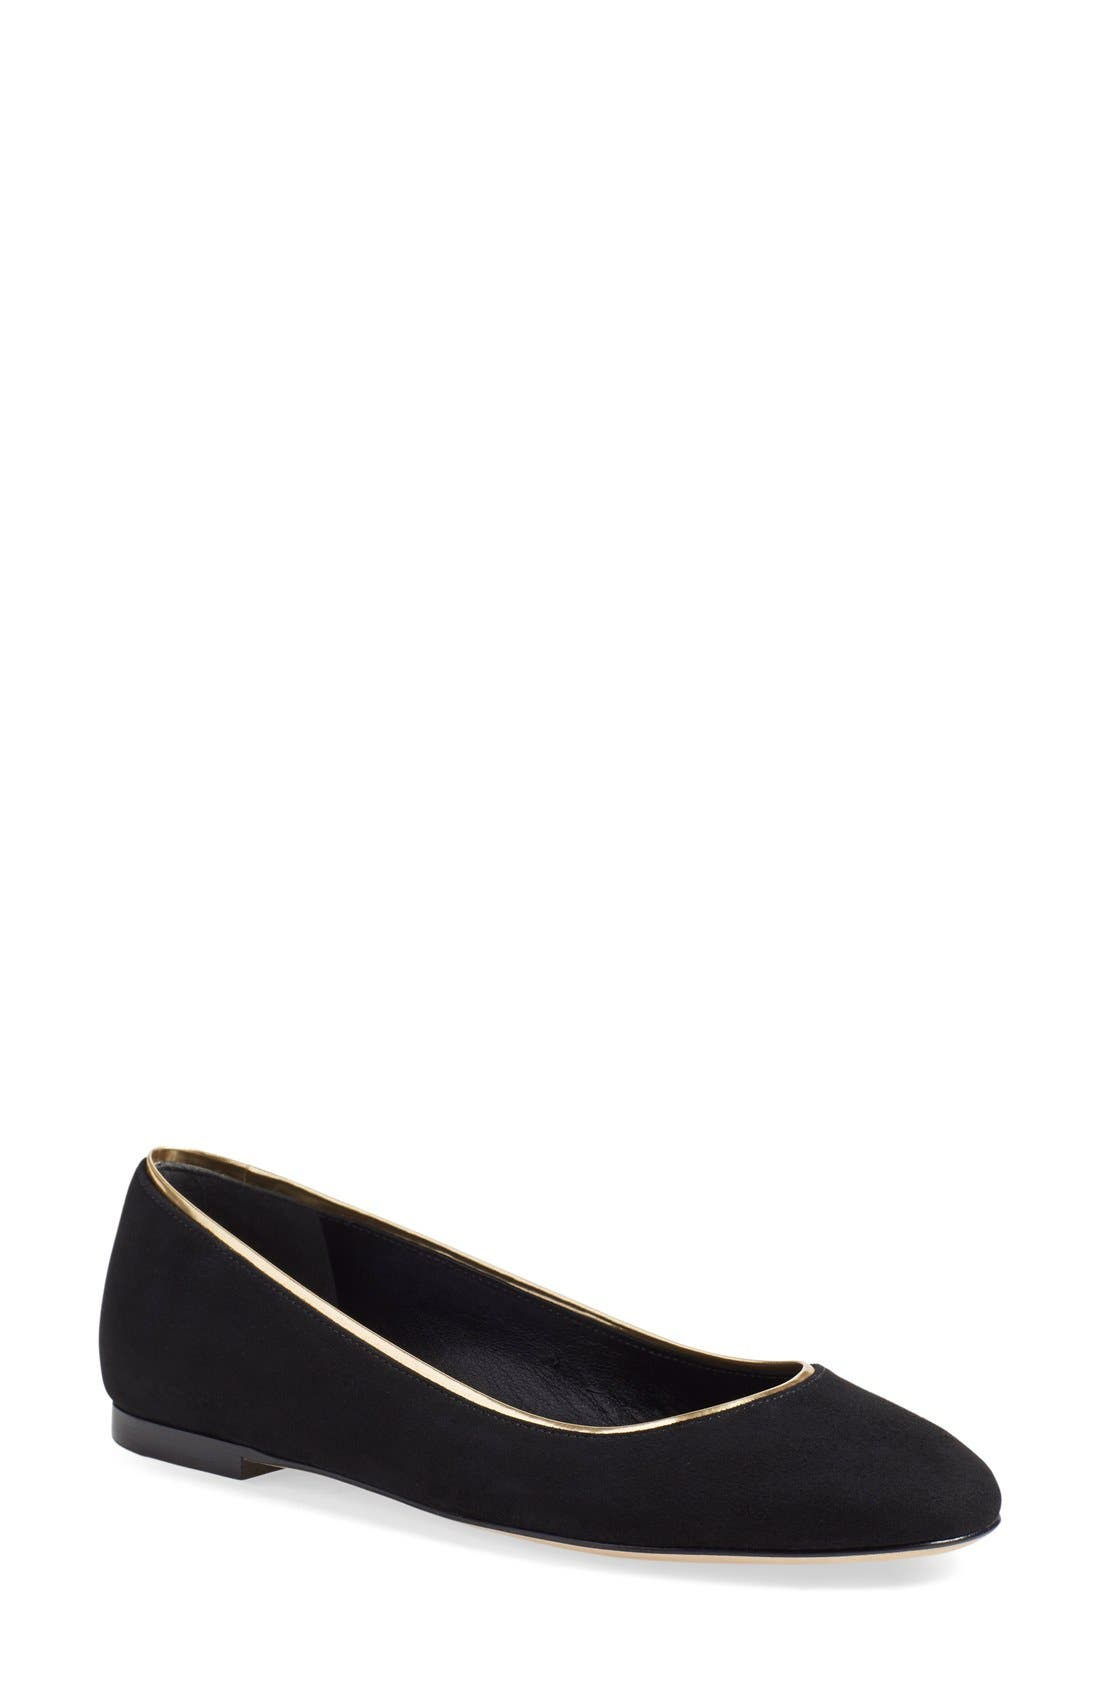 Diane von Furstenberg 'Cambridge' Flat (Women)